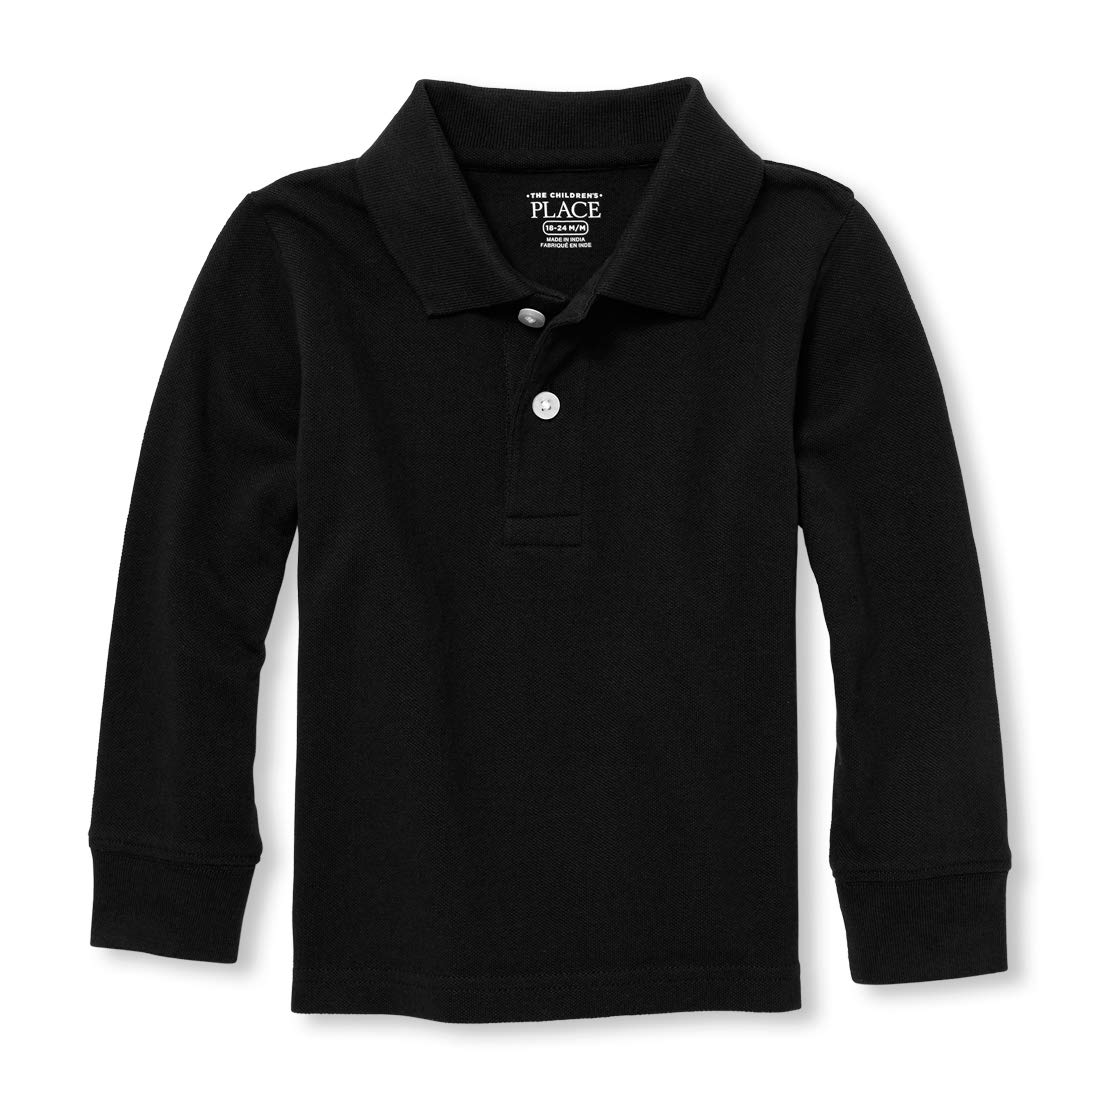 The Children's Place Baby Boys' Toddler Long Sleeve Uniform Polo, Black, 2T